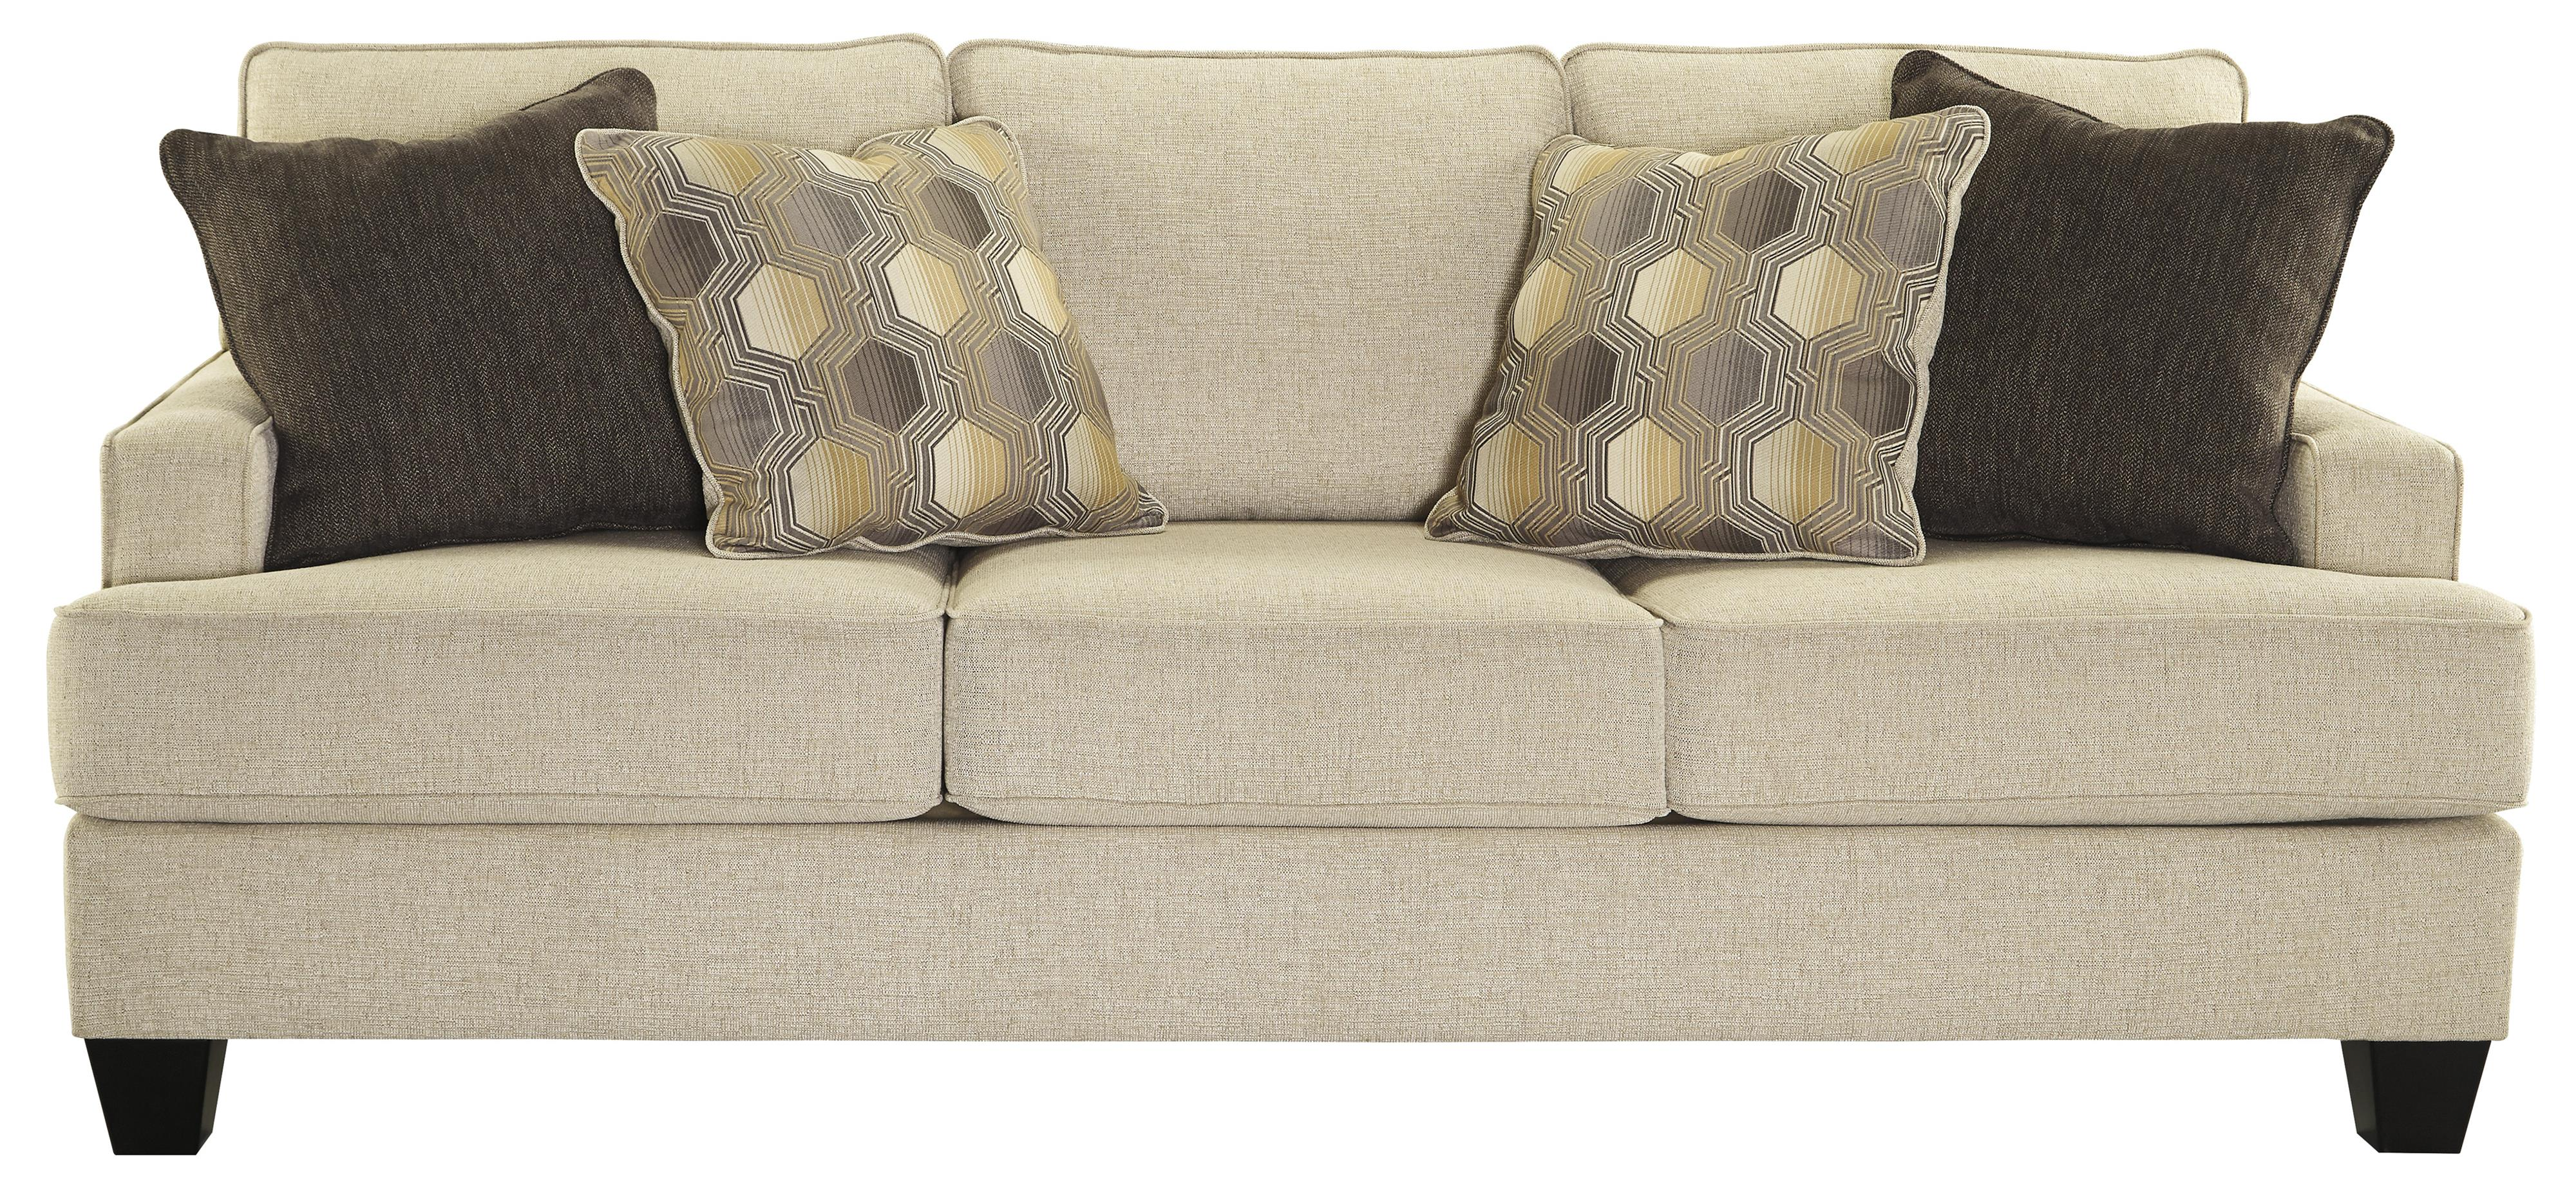 Queen sofa bed Benchcraft Brielyn Queen sofa bed - item number: 6140239 TQYGCBW